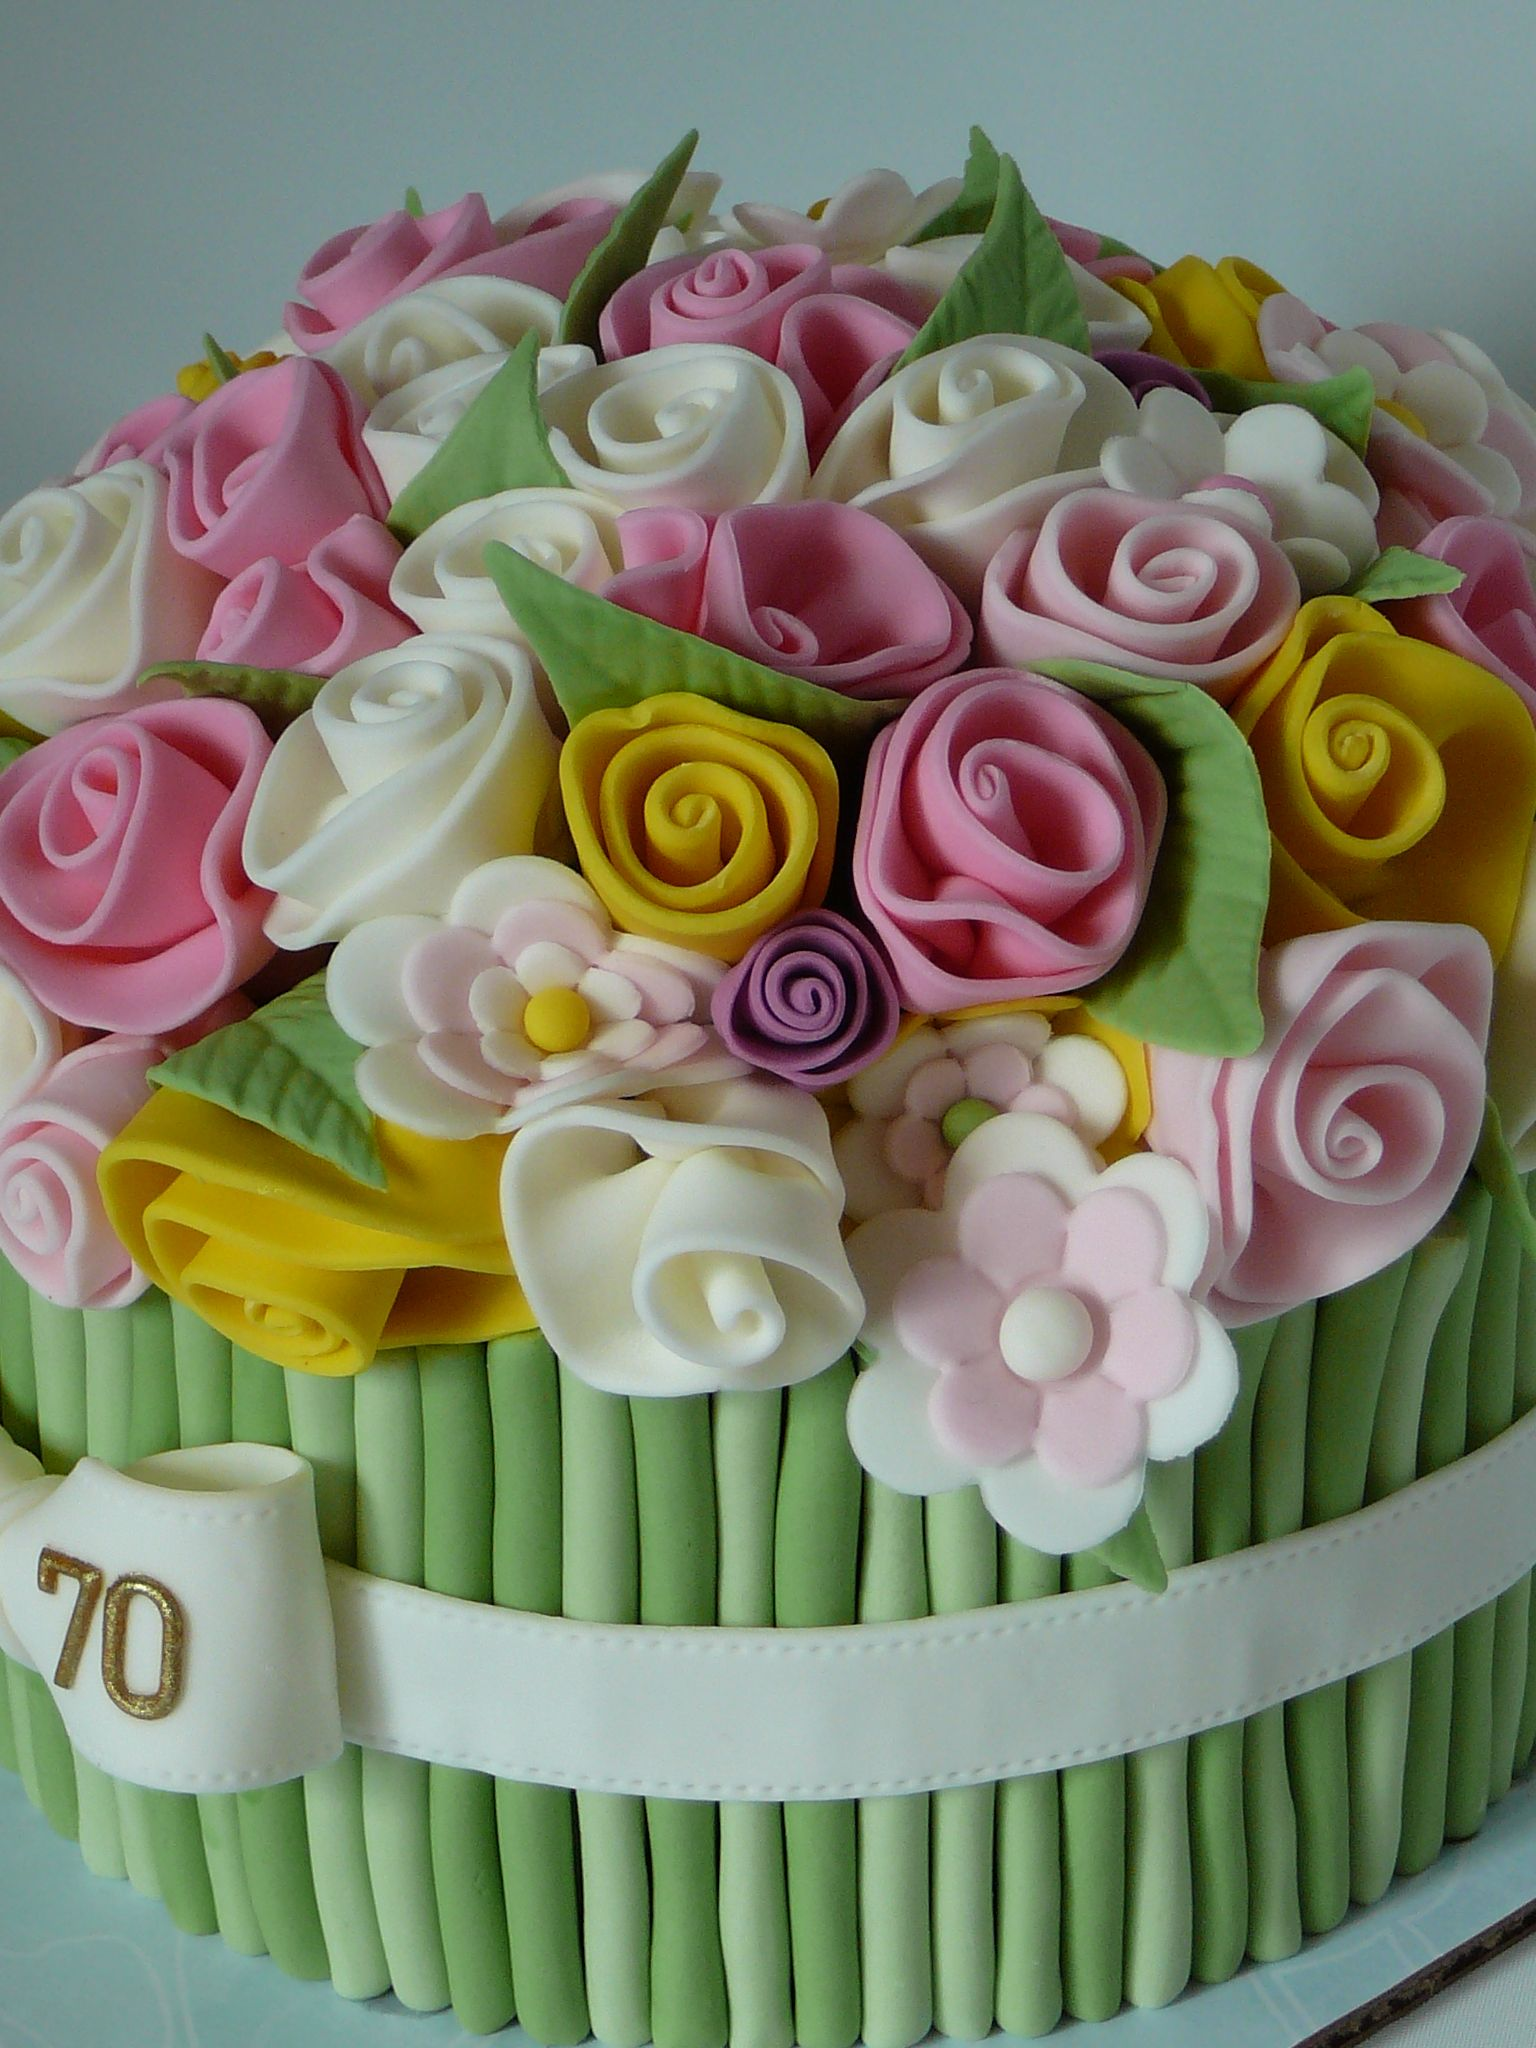 Flower bouquet cake I saw this design many times an